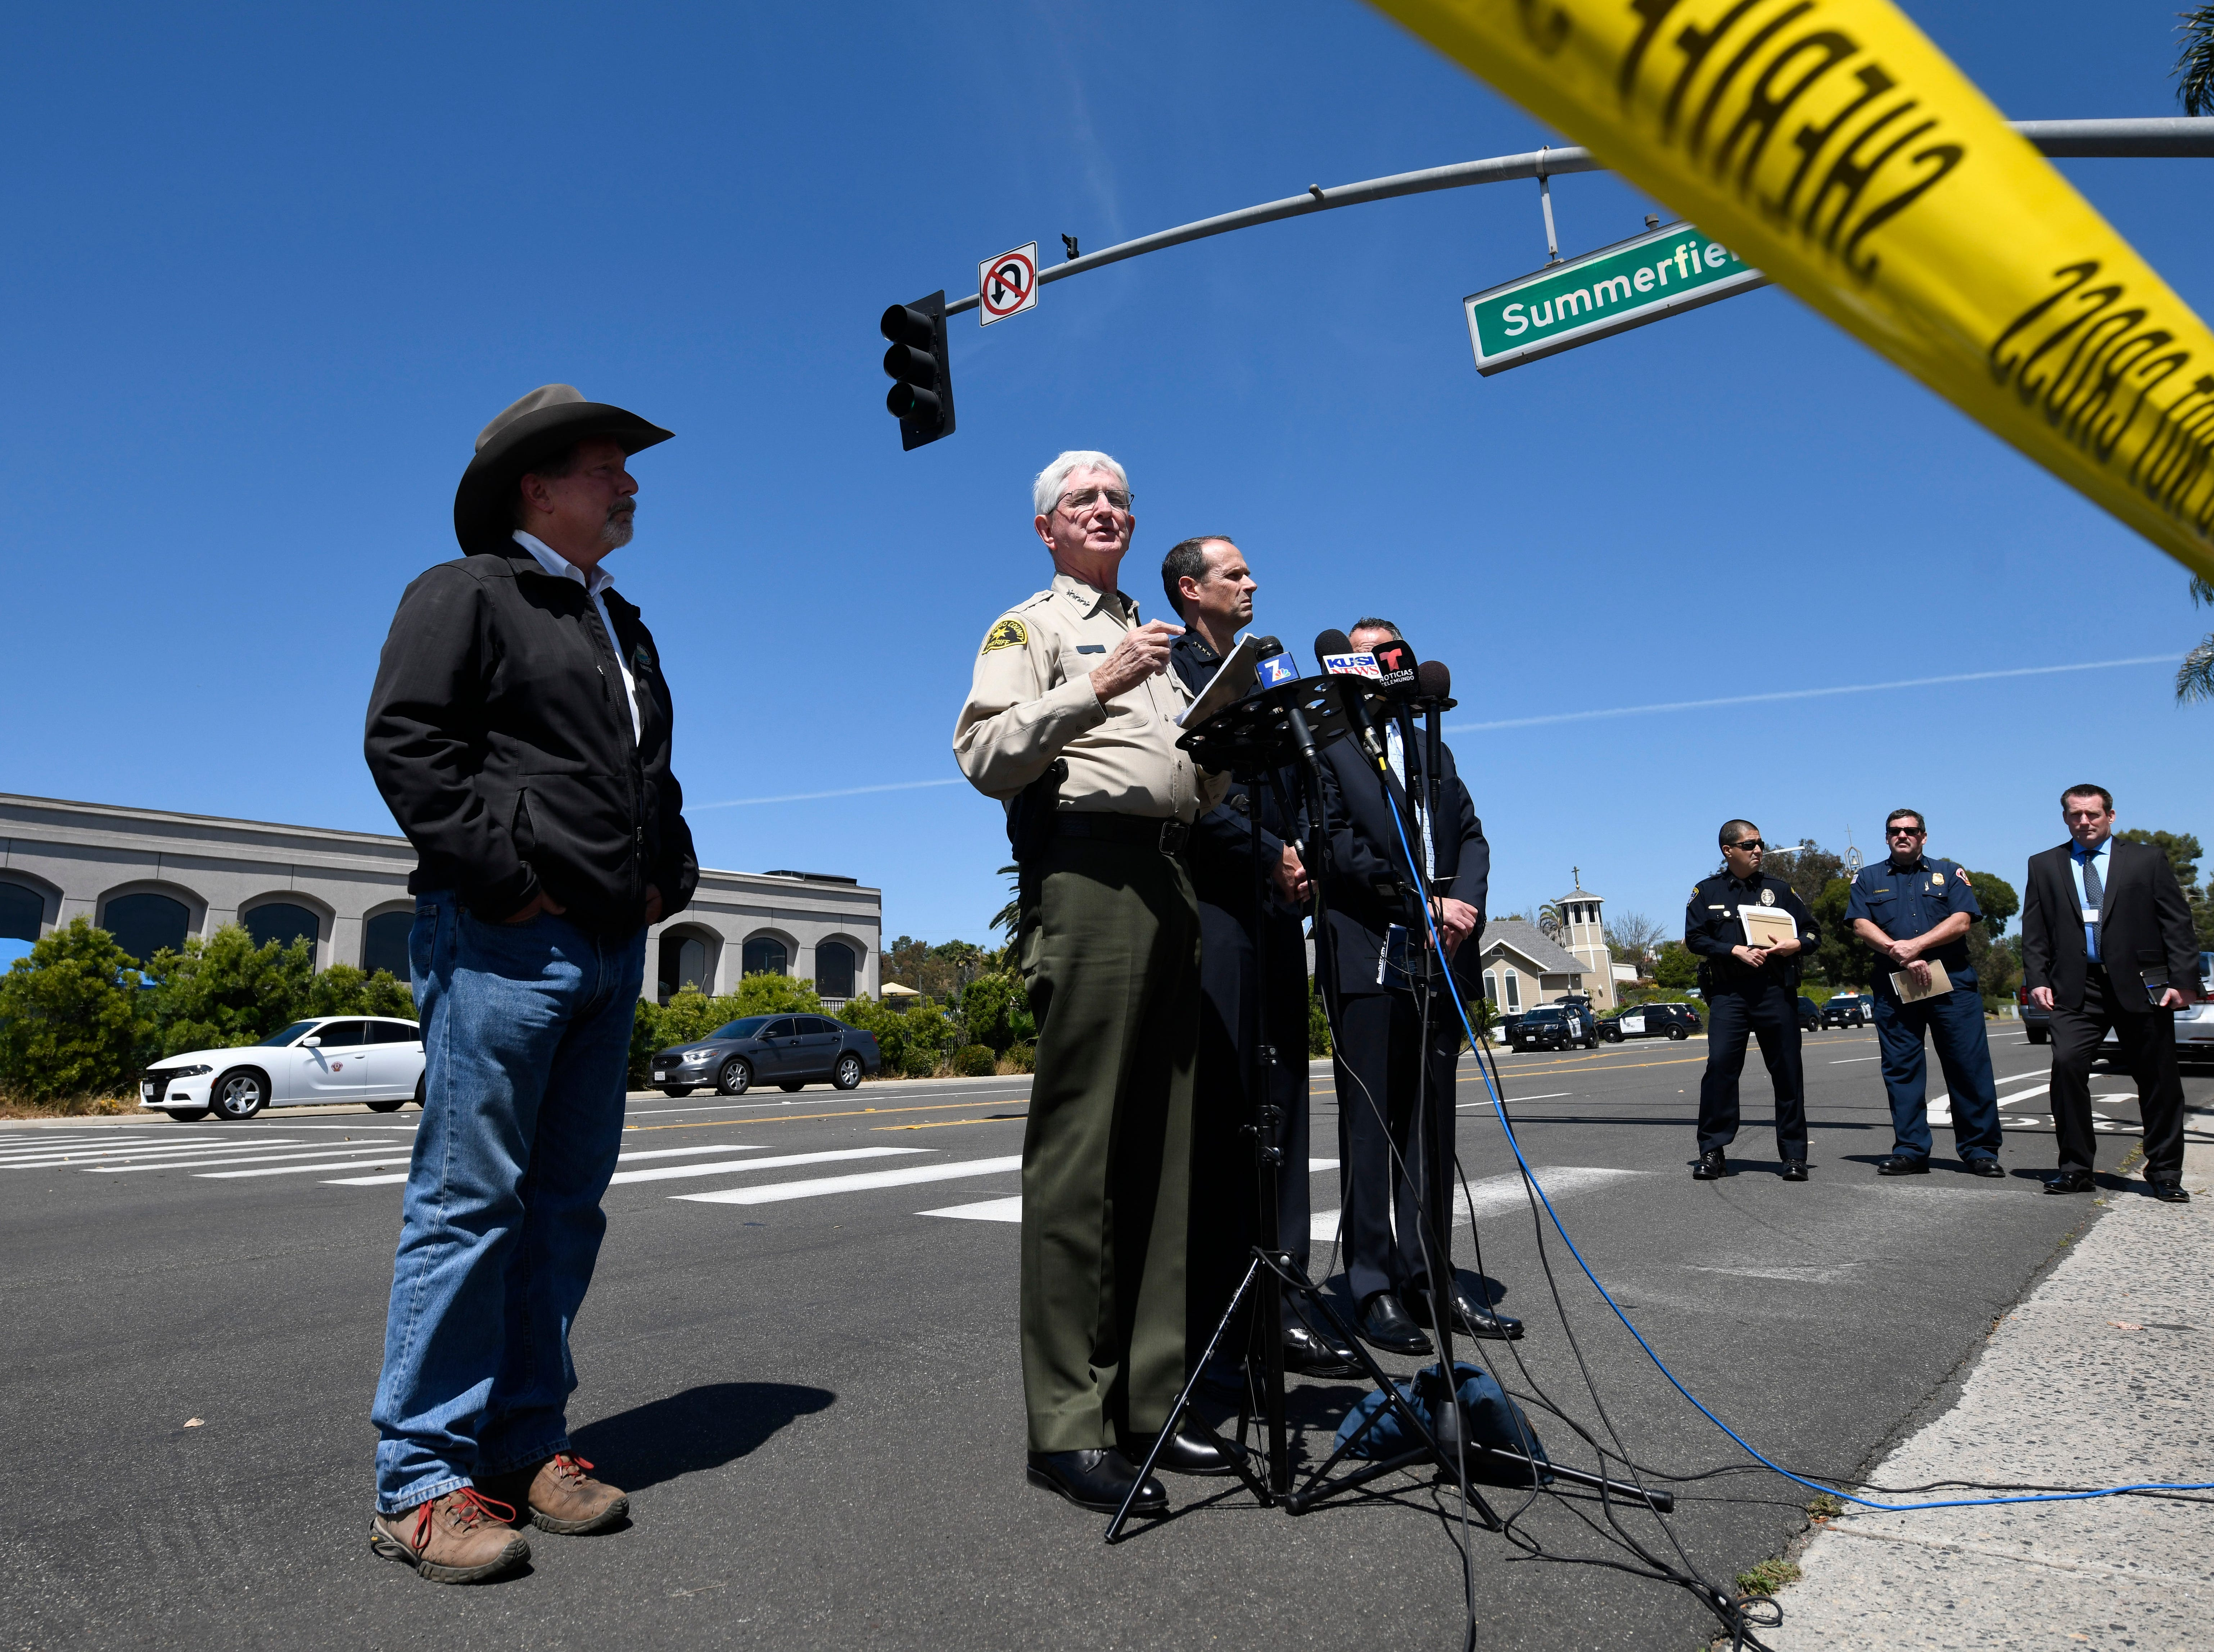 San Diego County Sheriff Bill Gore, center, speaks at a news conference held outside of the Chabad of Poway Synagogue Saturday, April 27, 2019, in Poway, Calif. One person was killed and three injured in a shooting at the synagogue.